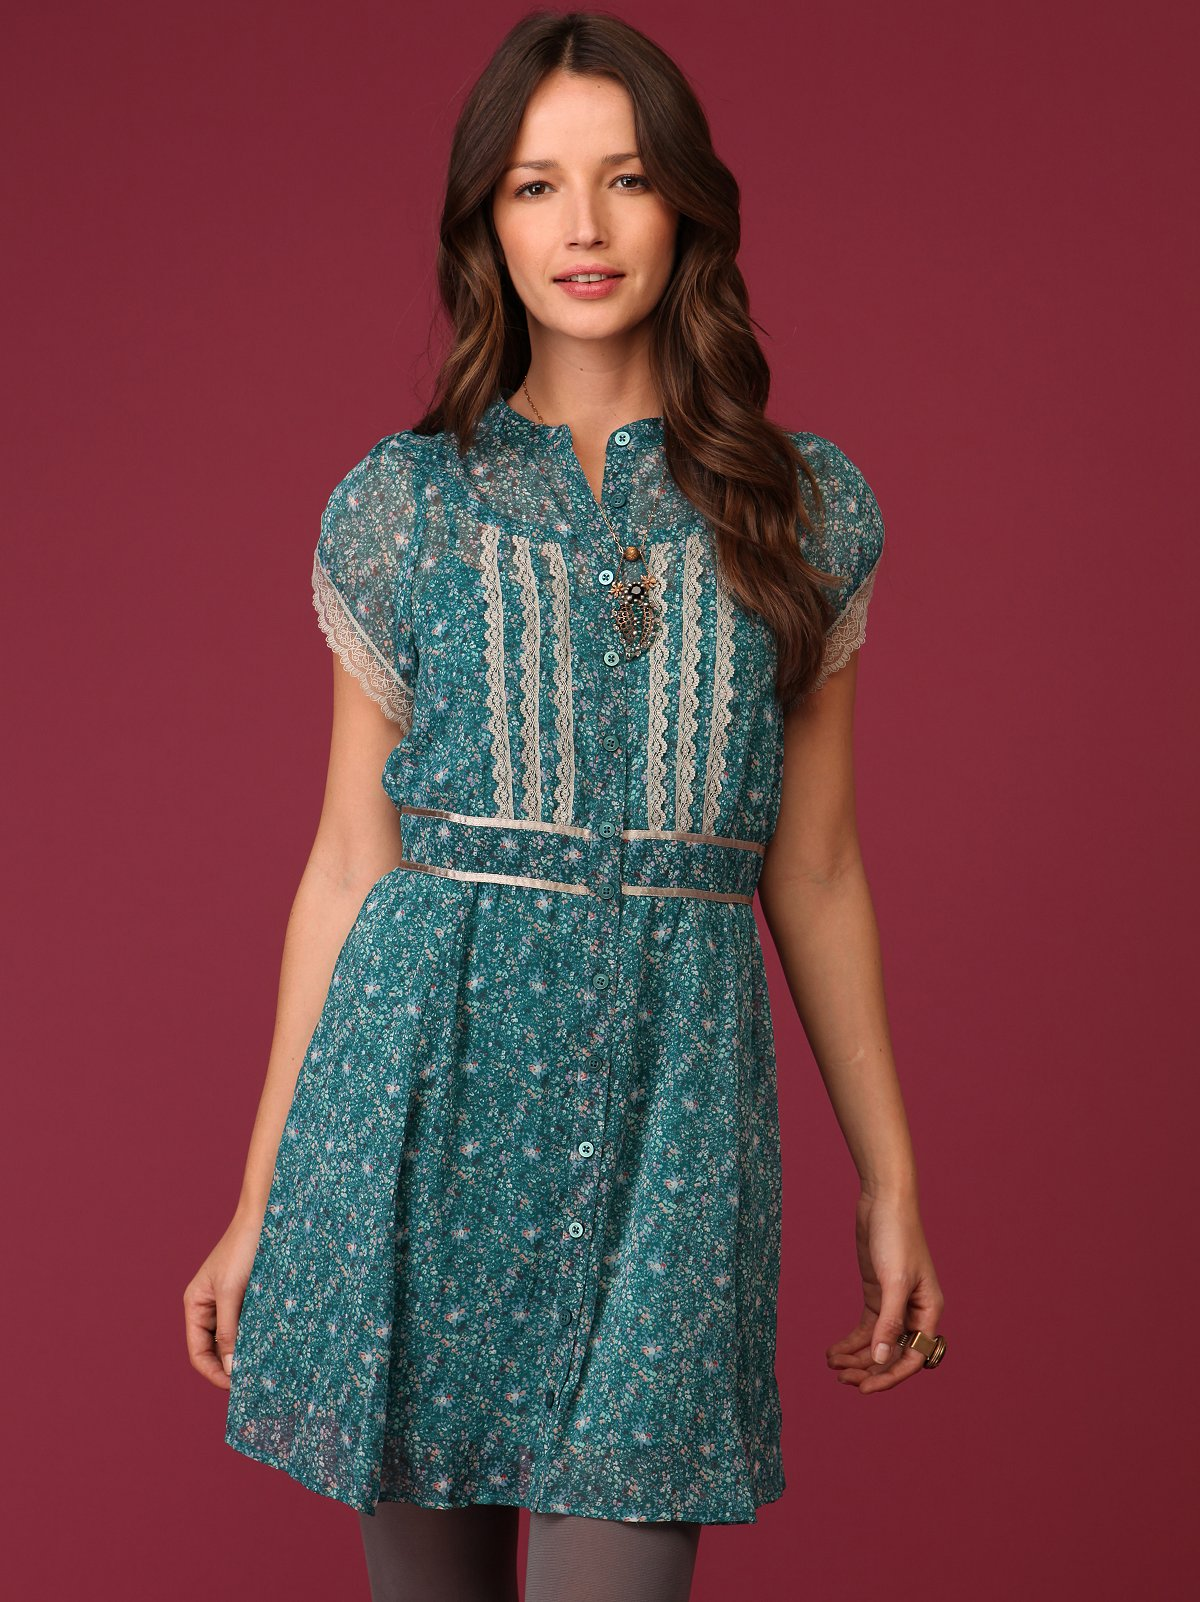 Teal Ditsy Floral Dress